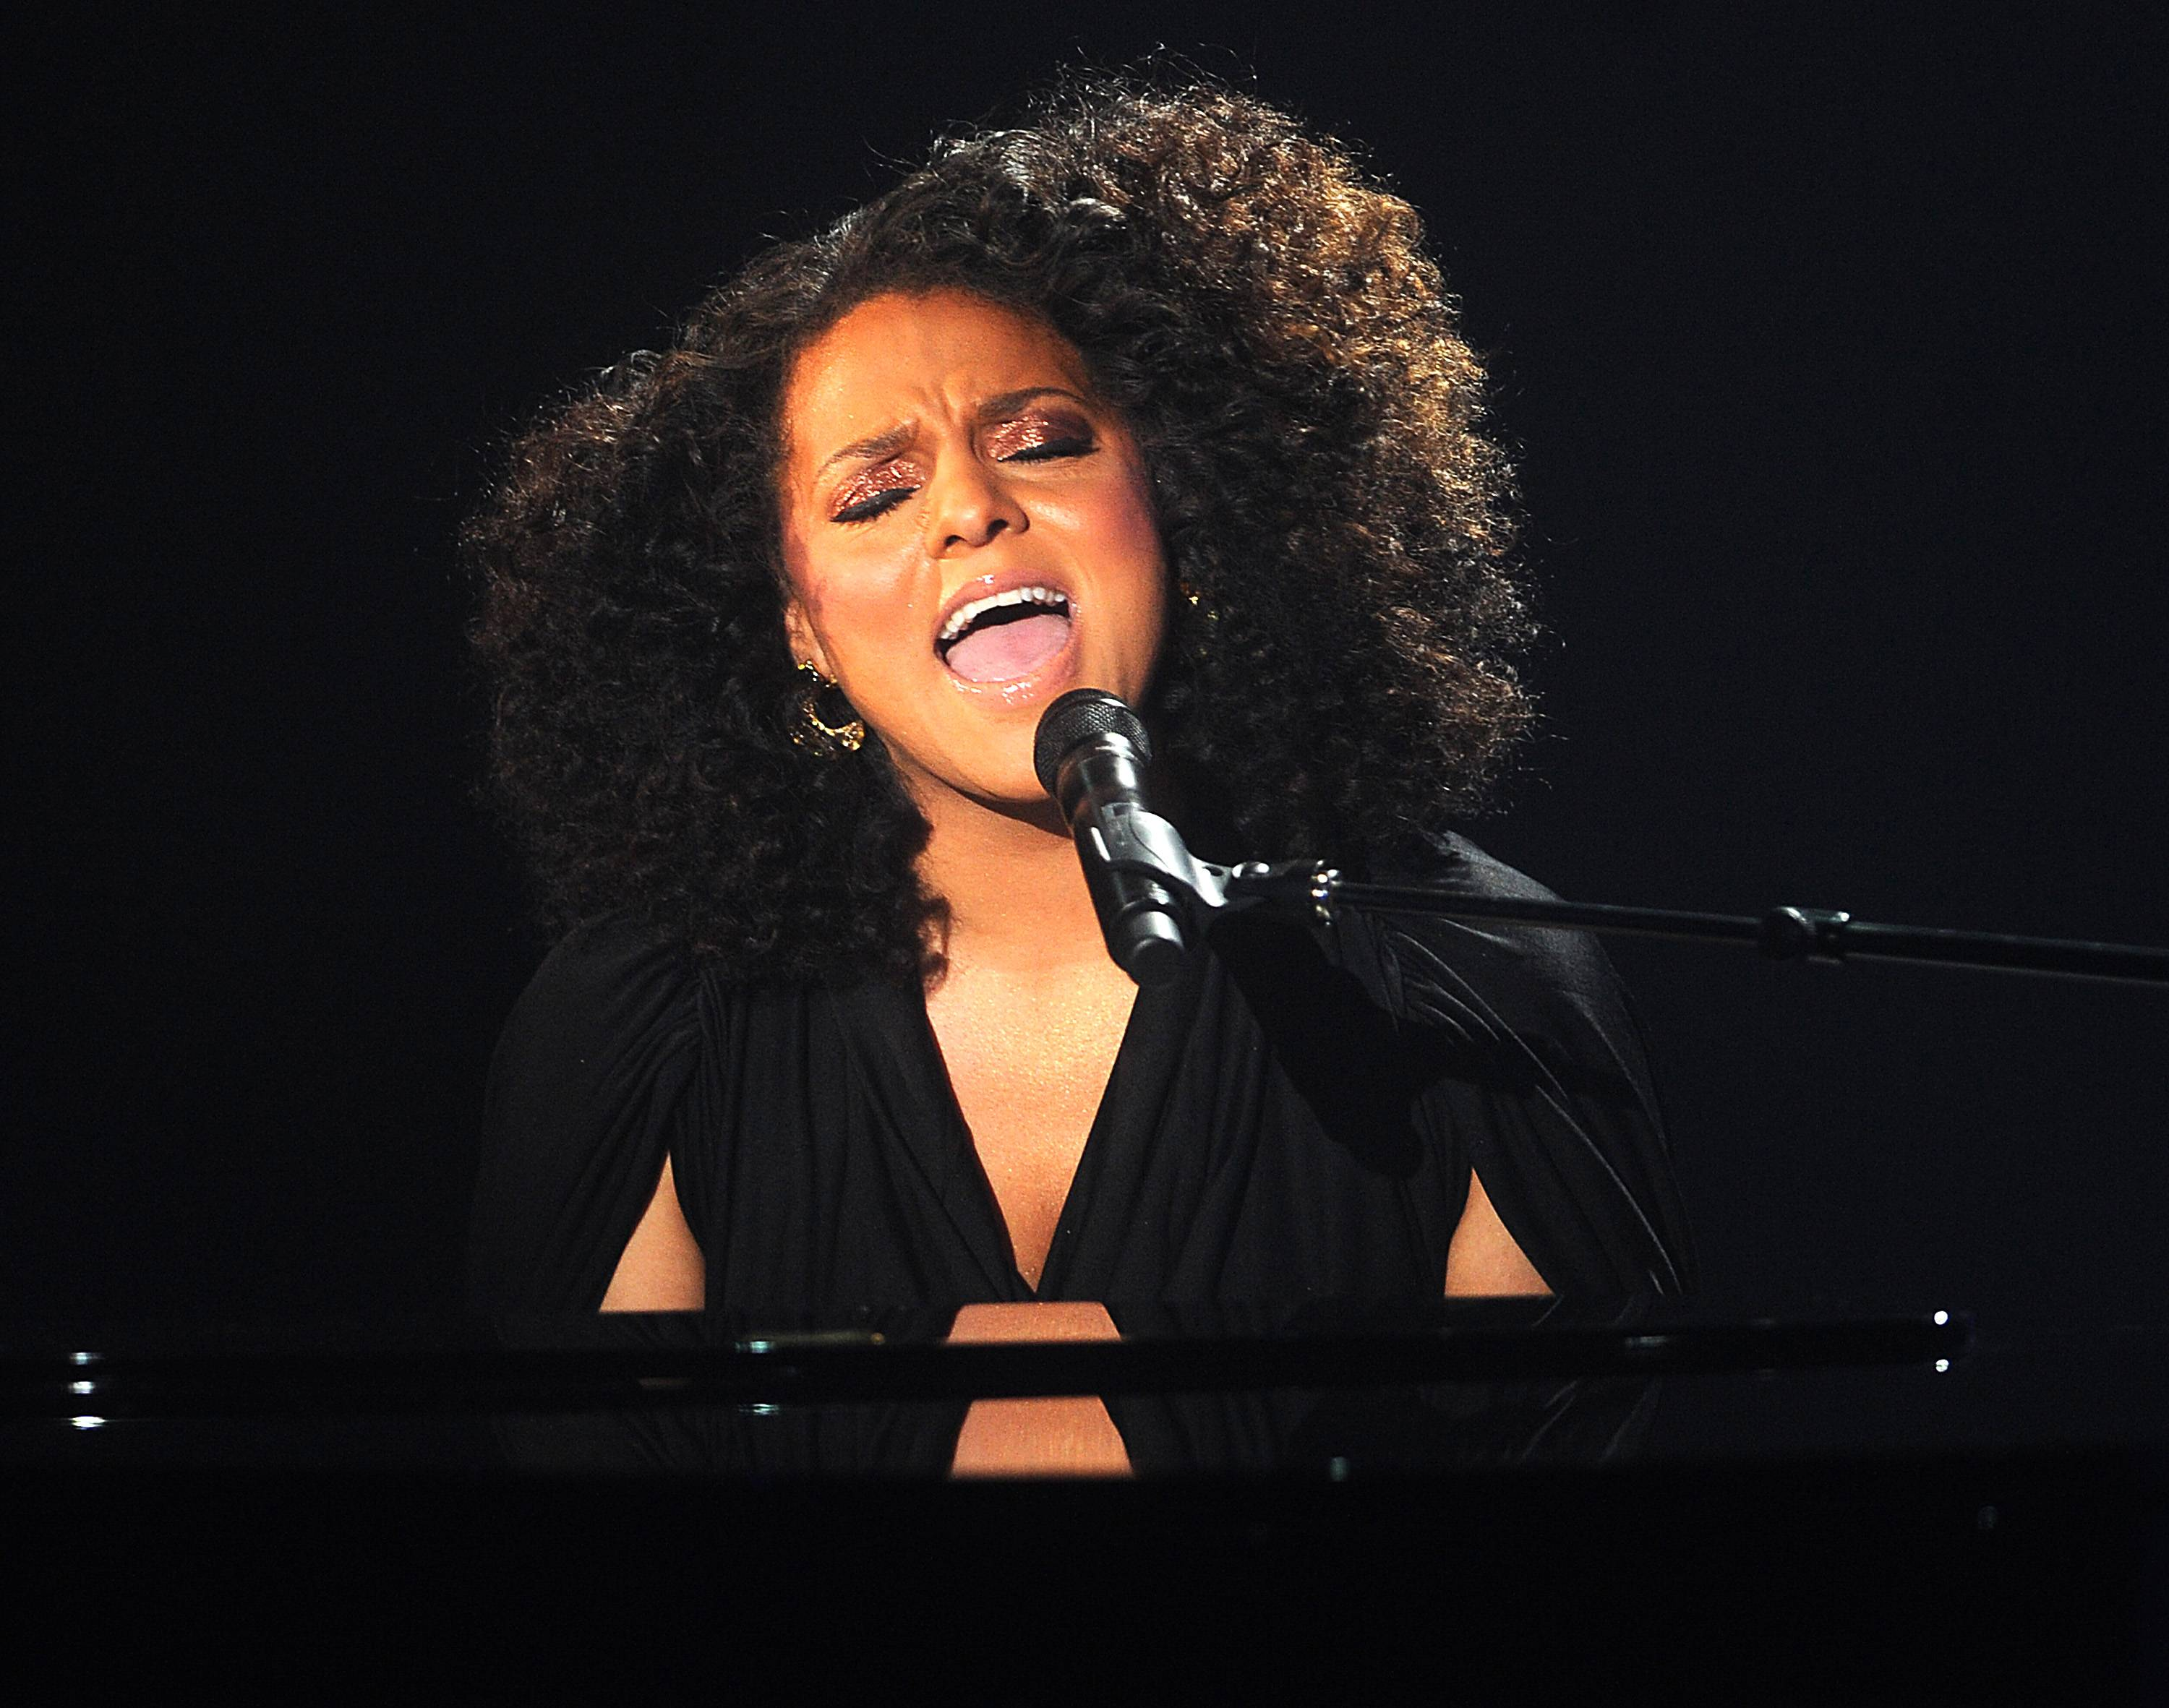 Dawning of a New Era - In 2011, Ambrosius released her solo debut, Late Nights, Early Mornings, to critical acclaim. The album peaked at No. 22 on the Billboard Hot 100.(Photo: Brad Barket/PictureGroup)